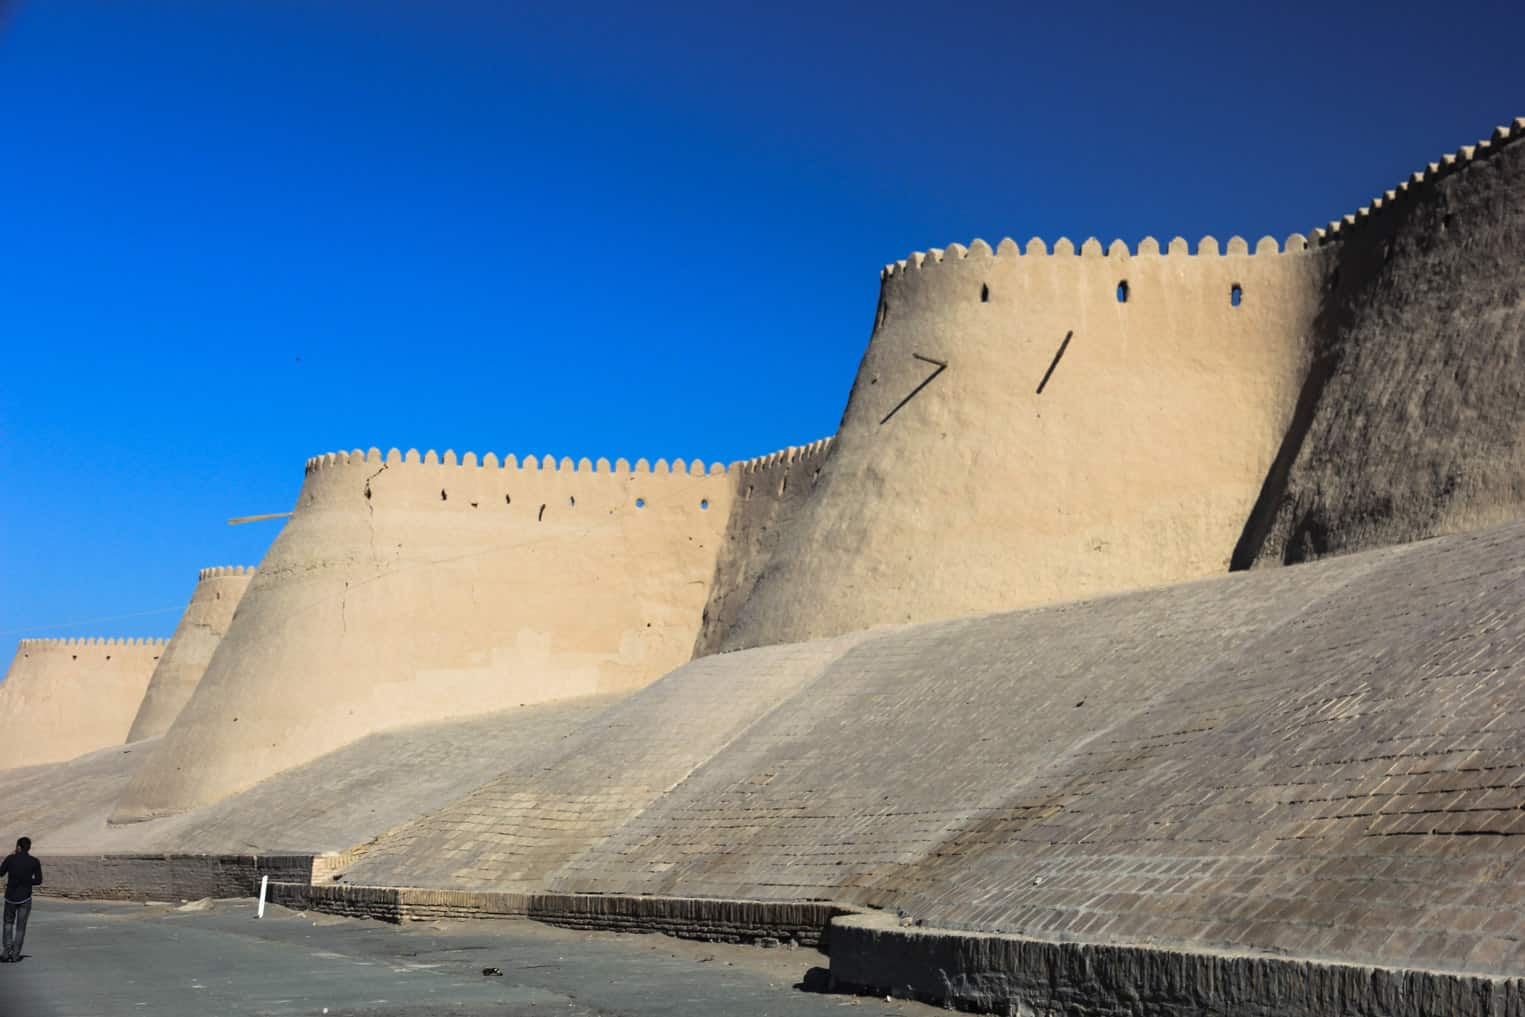 Part of the 10 meter tall wall surrunding old town Khiva travel guide